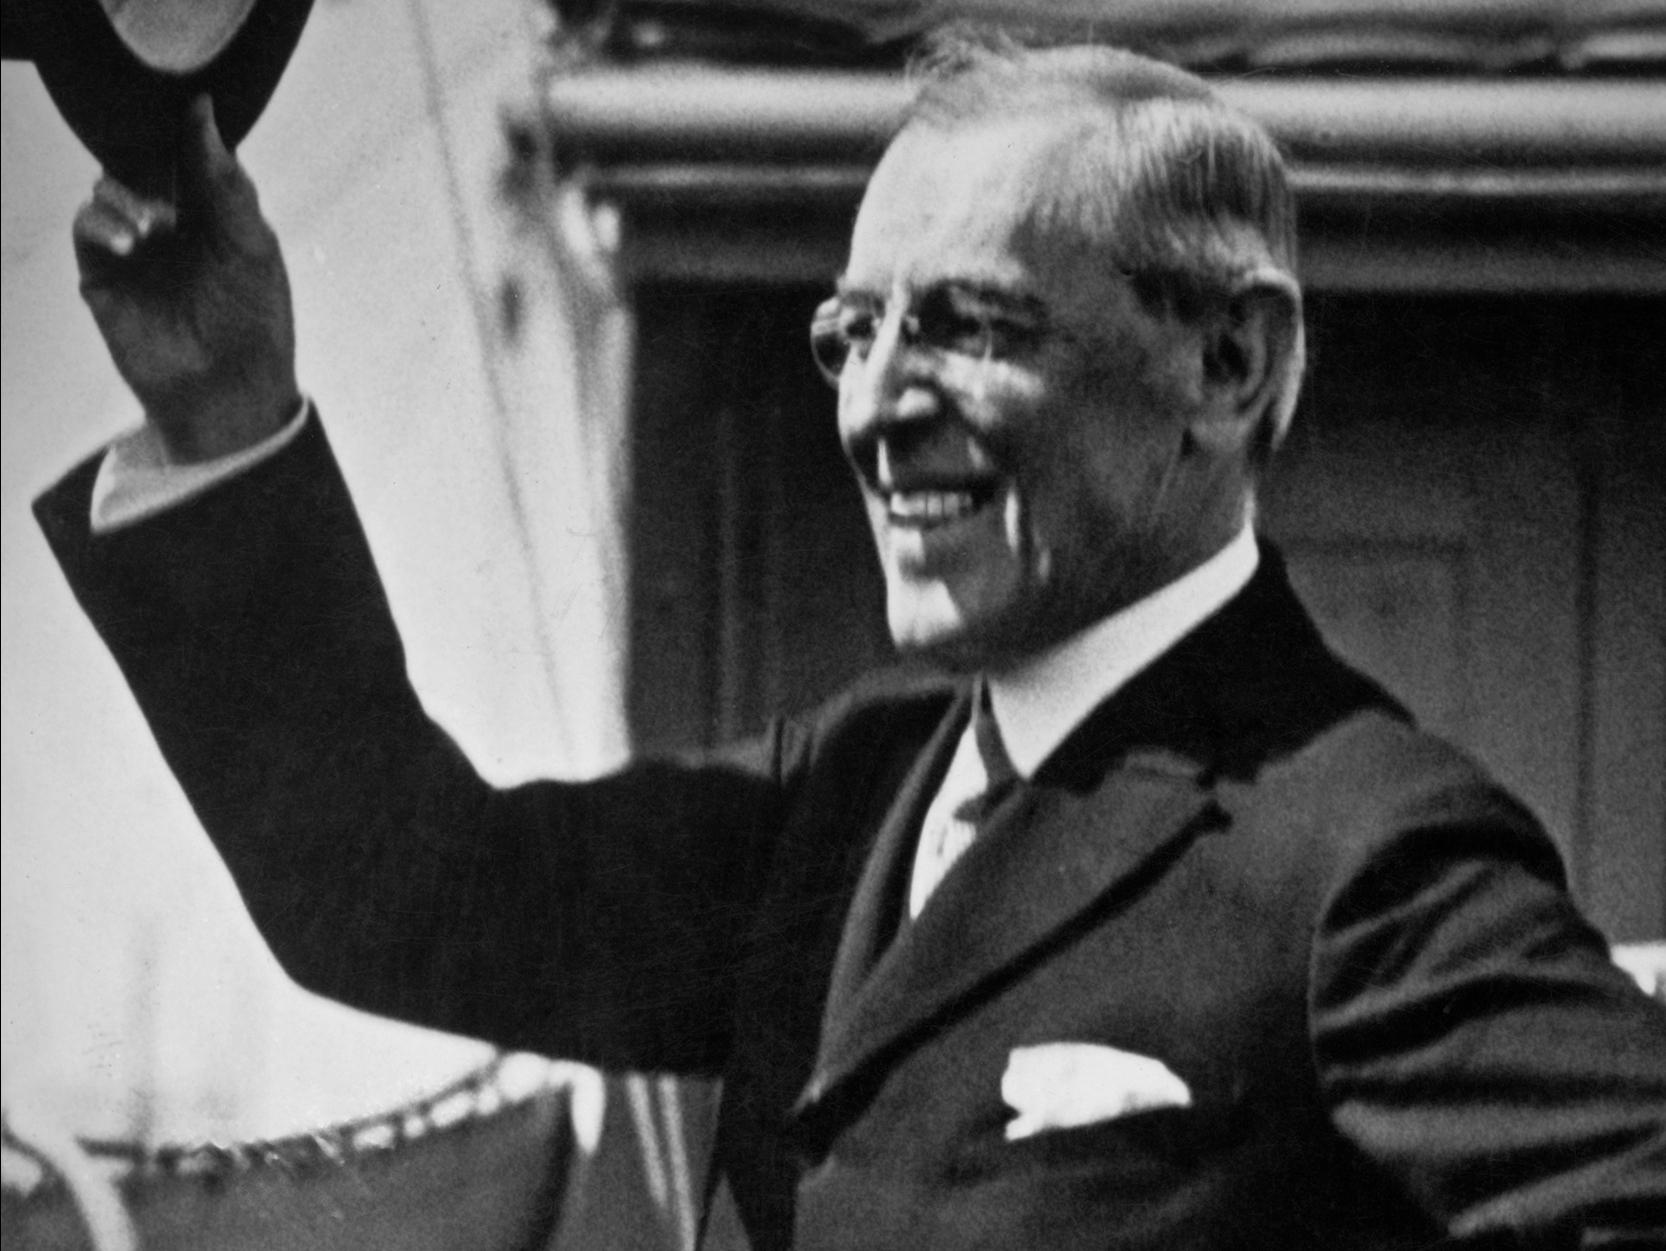 the life of thomas woodrow wilson and his take on politics Woodrow wilson was born on december 28 his first name is actually thomas but he chose woodrow as his professional name because he thought it sounded more authoritative while garfield taught politics at princeton and wilson was its president.